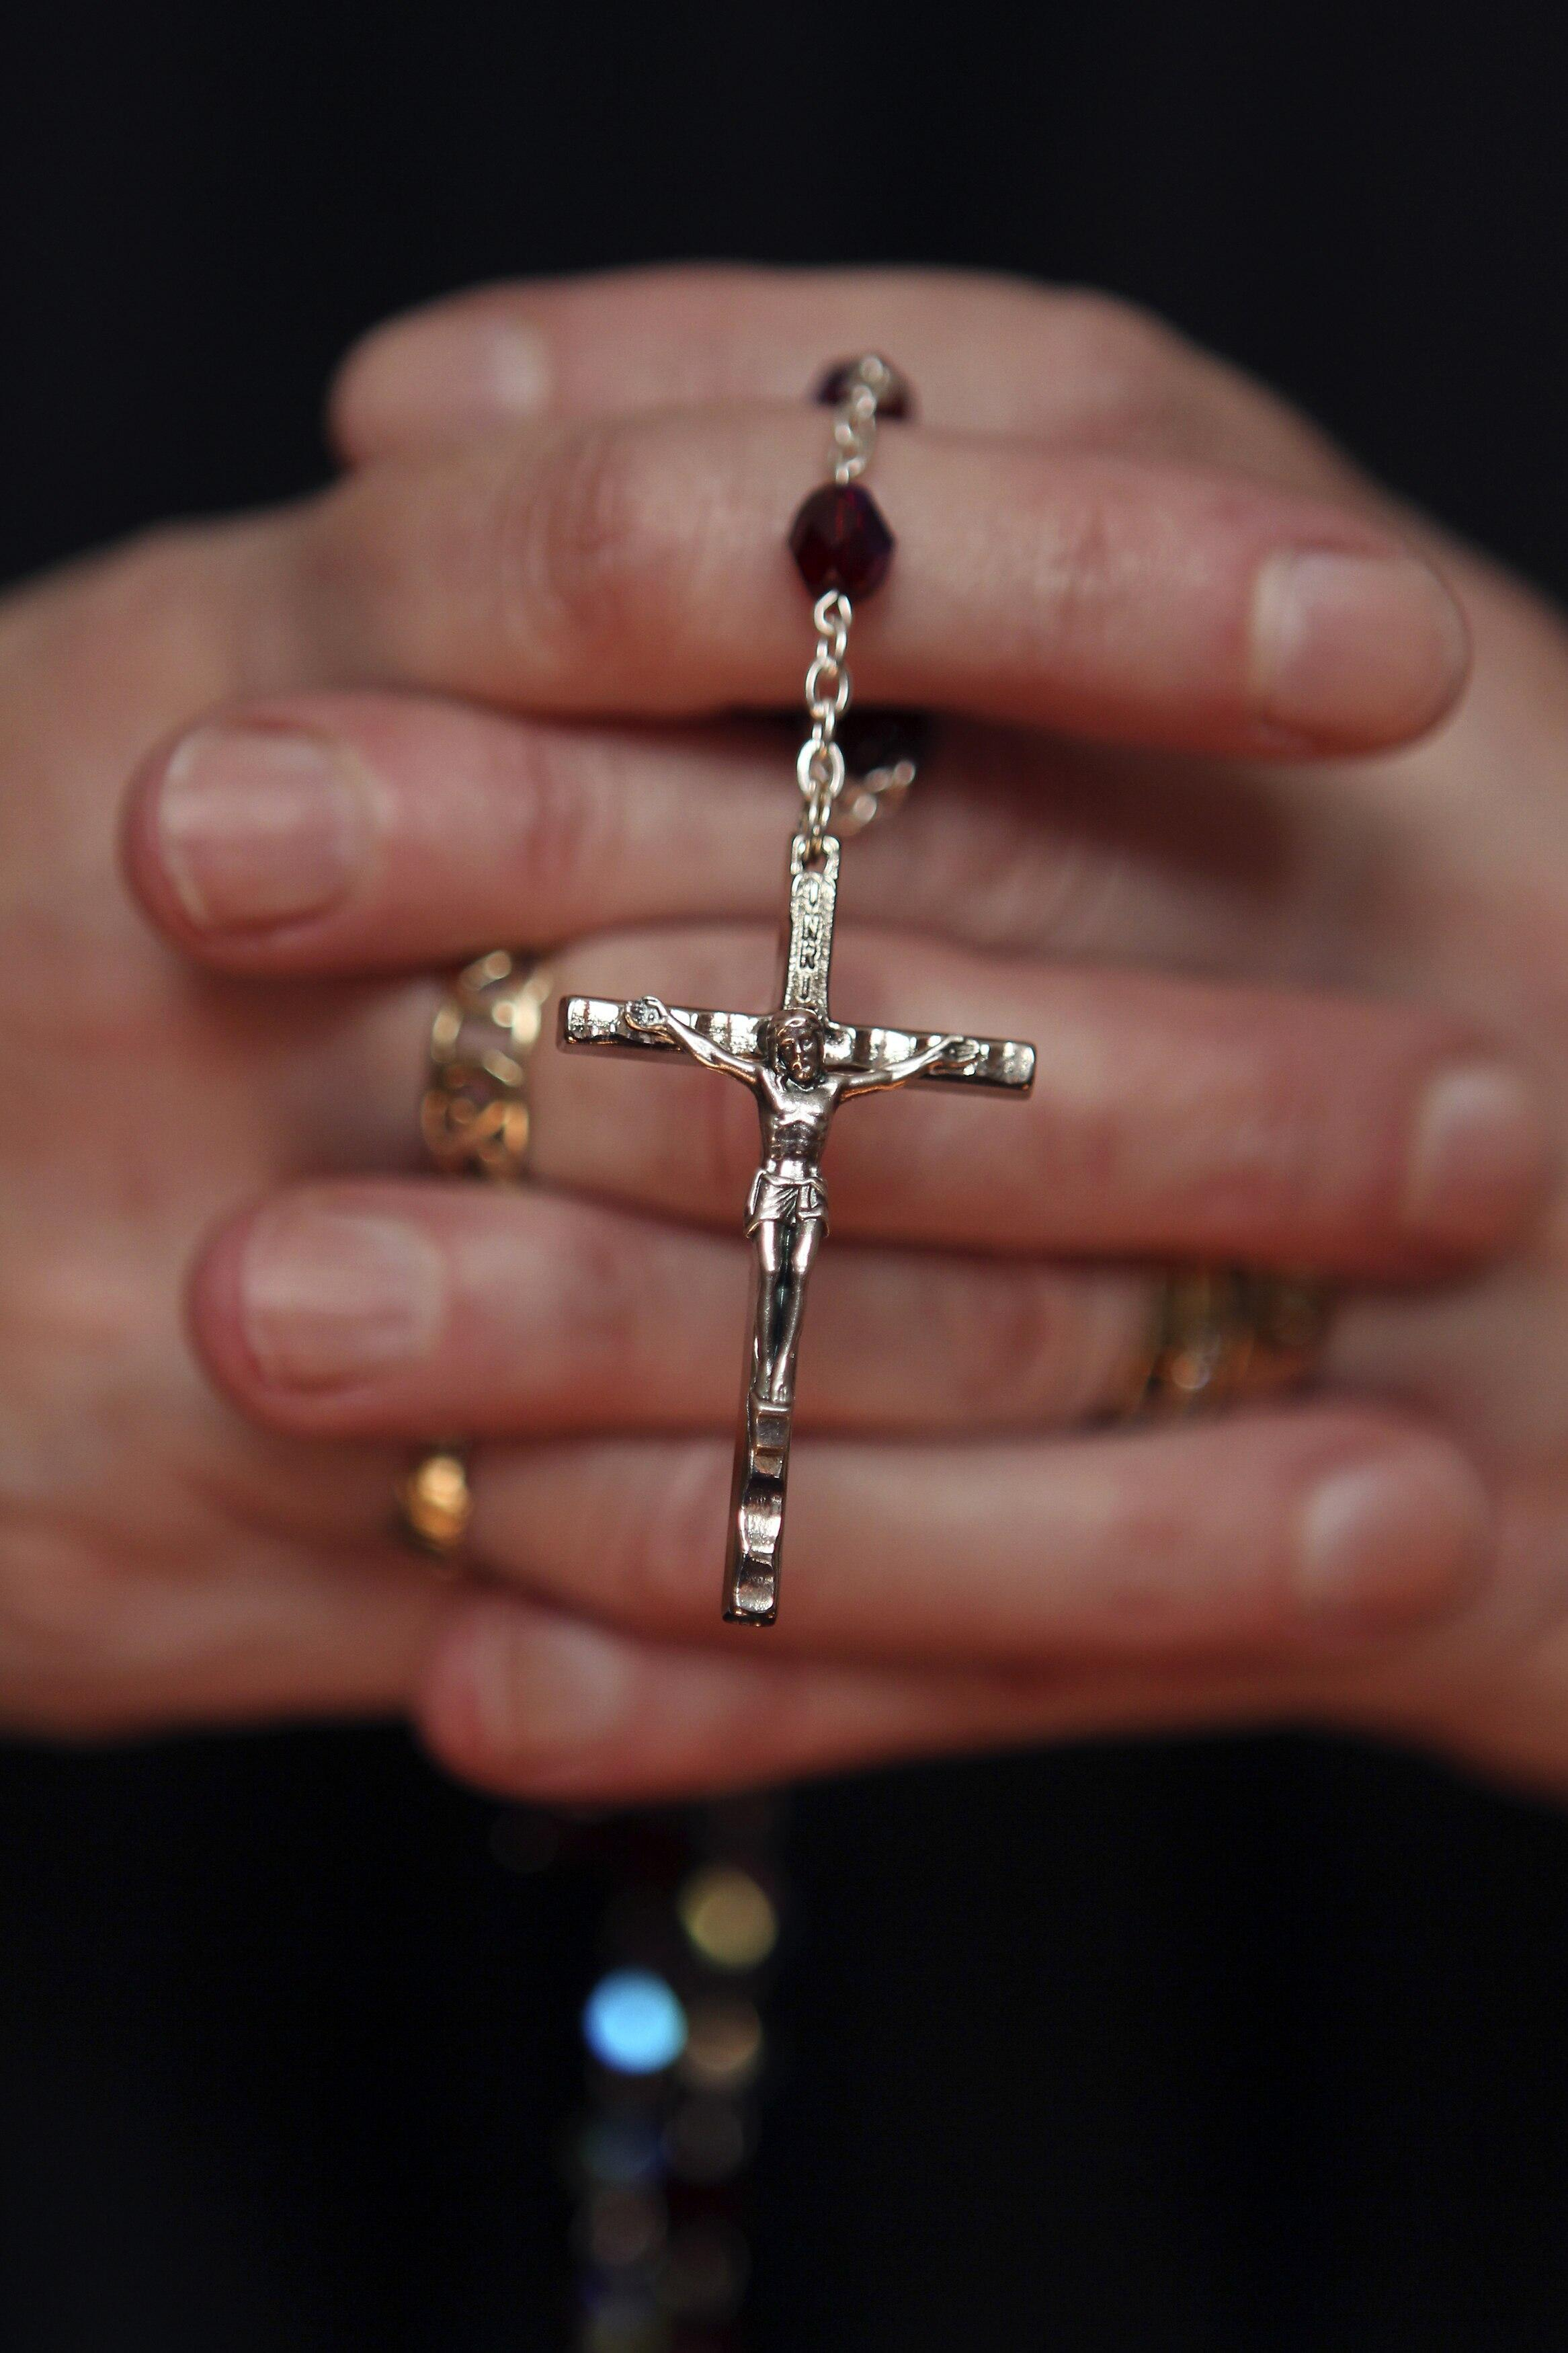 The French Cathoic Church has been rocked by a recent report of systemic abuse of hundreds of thousands since the 1950s.